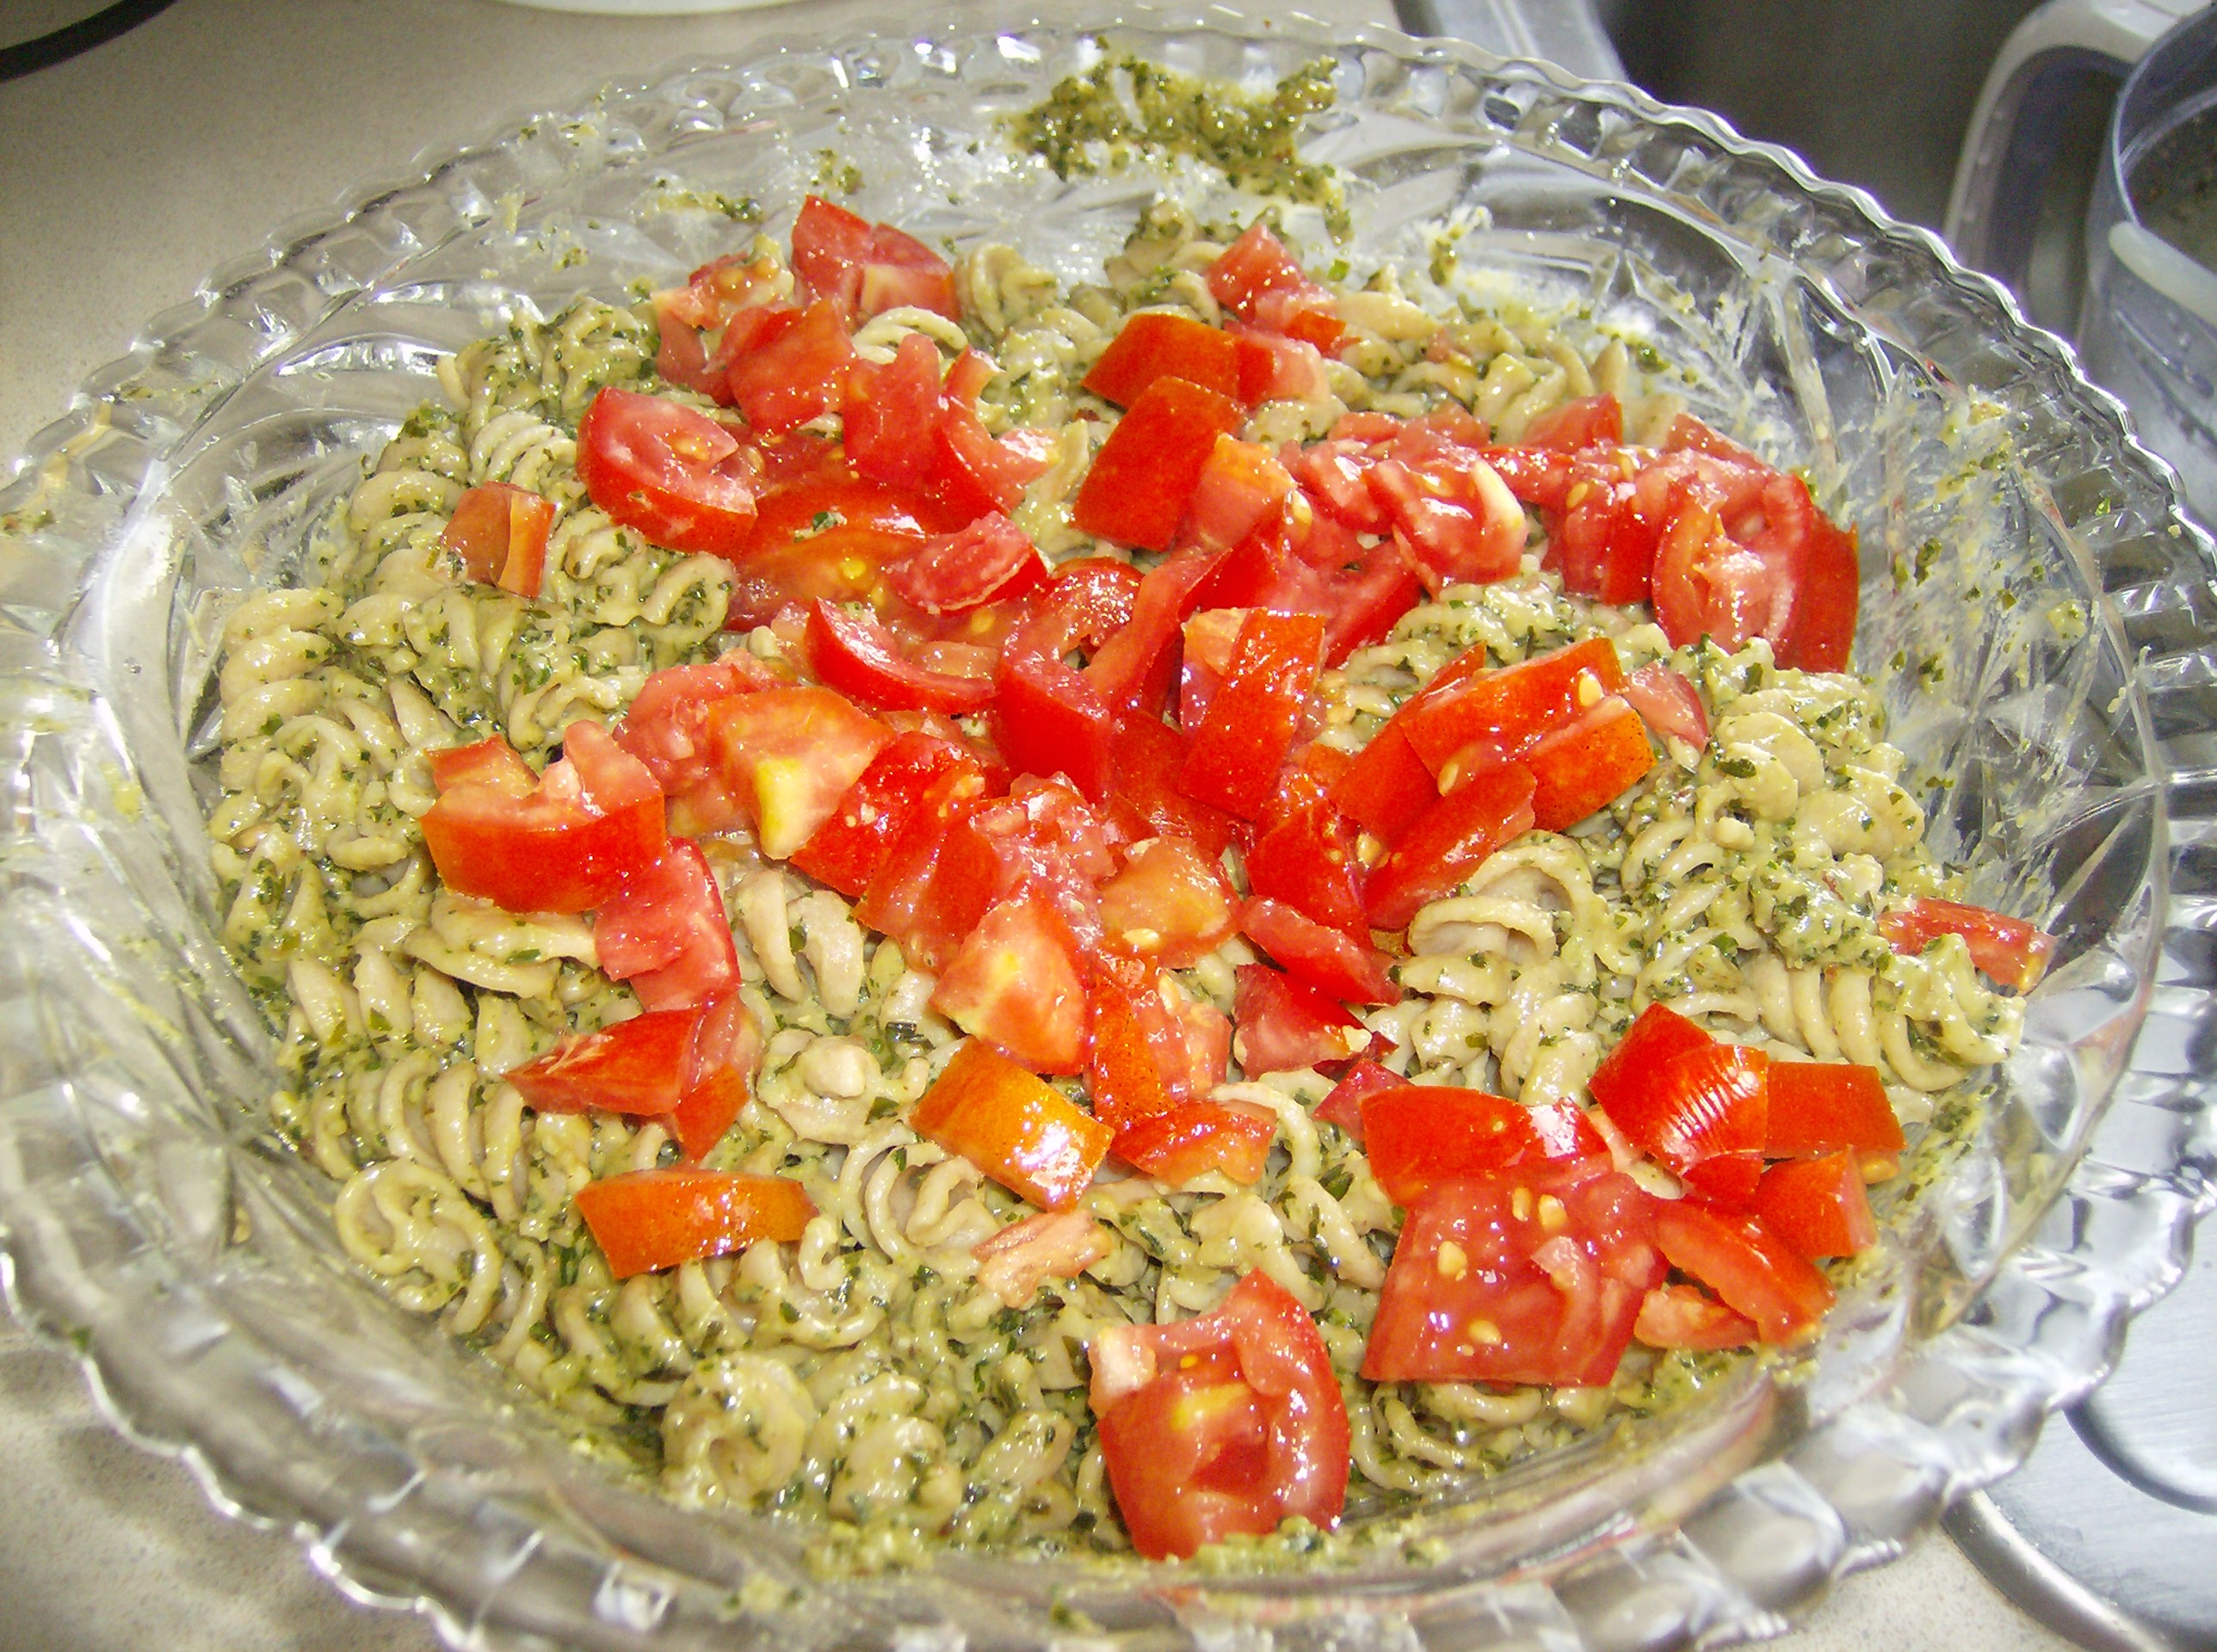 ... Course Side Dish Side Dish - Other Pasta with Pesto sauce and cream